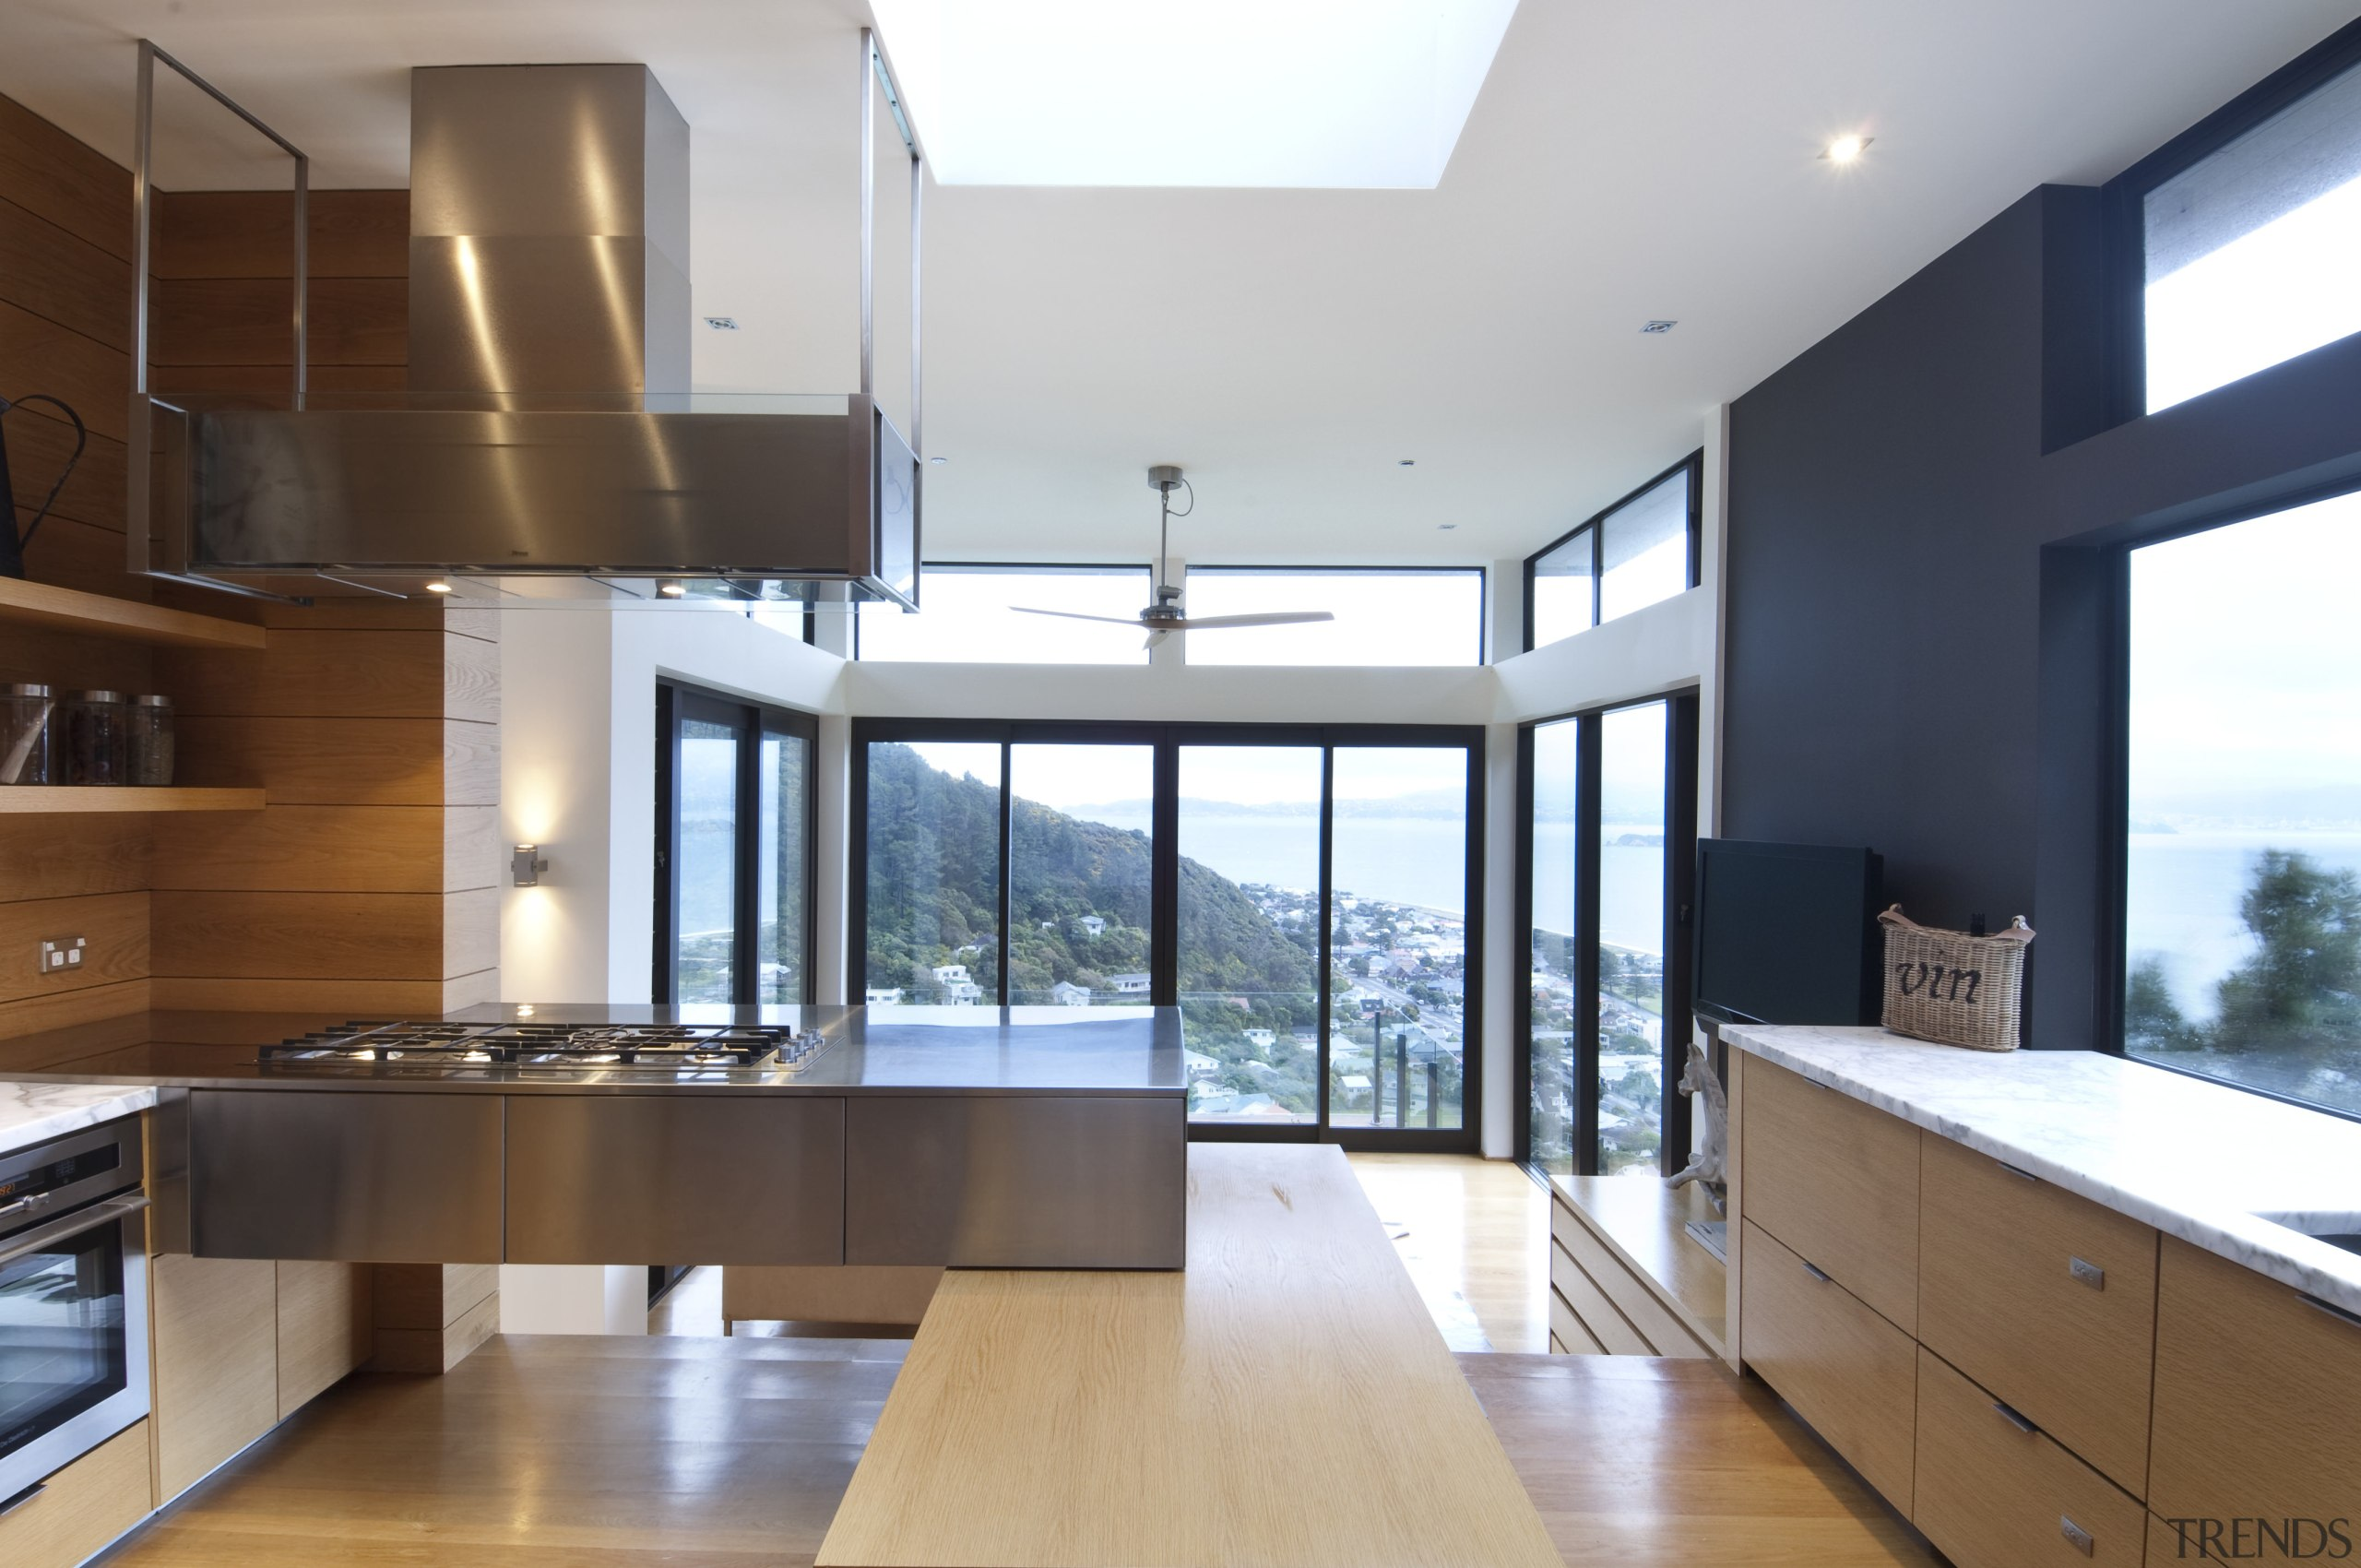 View of kitchen which features oak floors, and architecture, countertop, daylighting, interior design, kitchen, real estate, white, brown